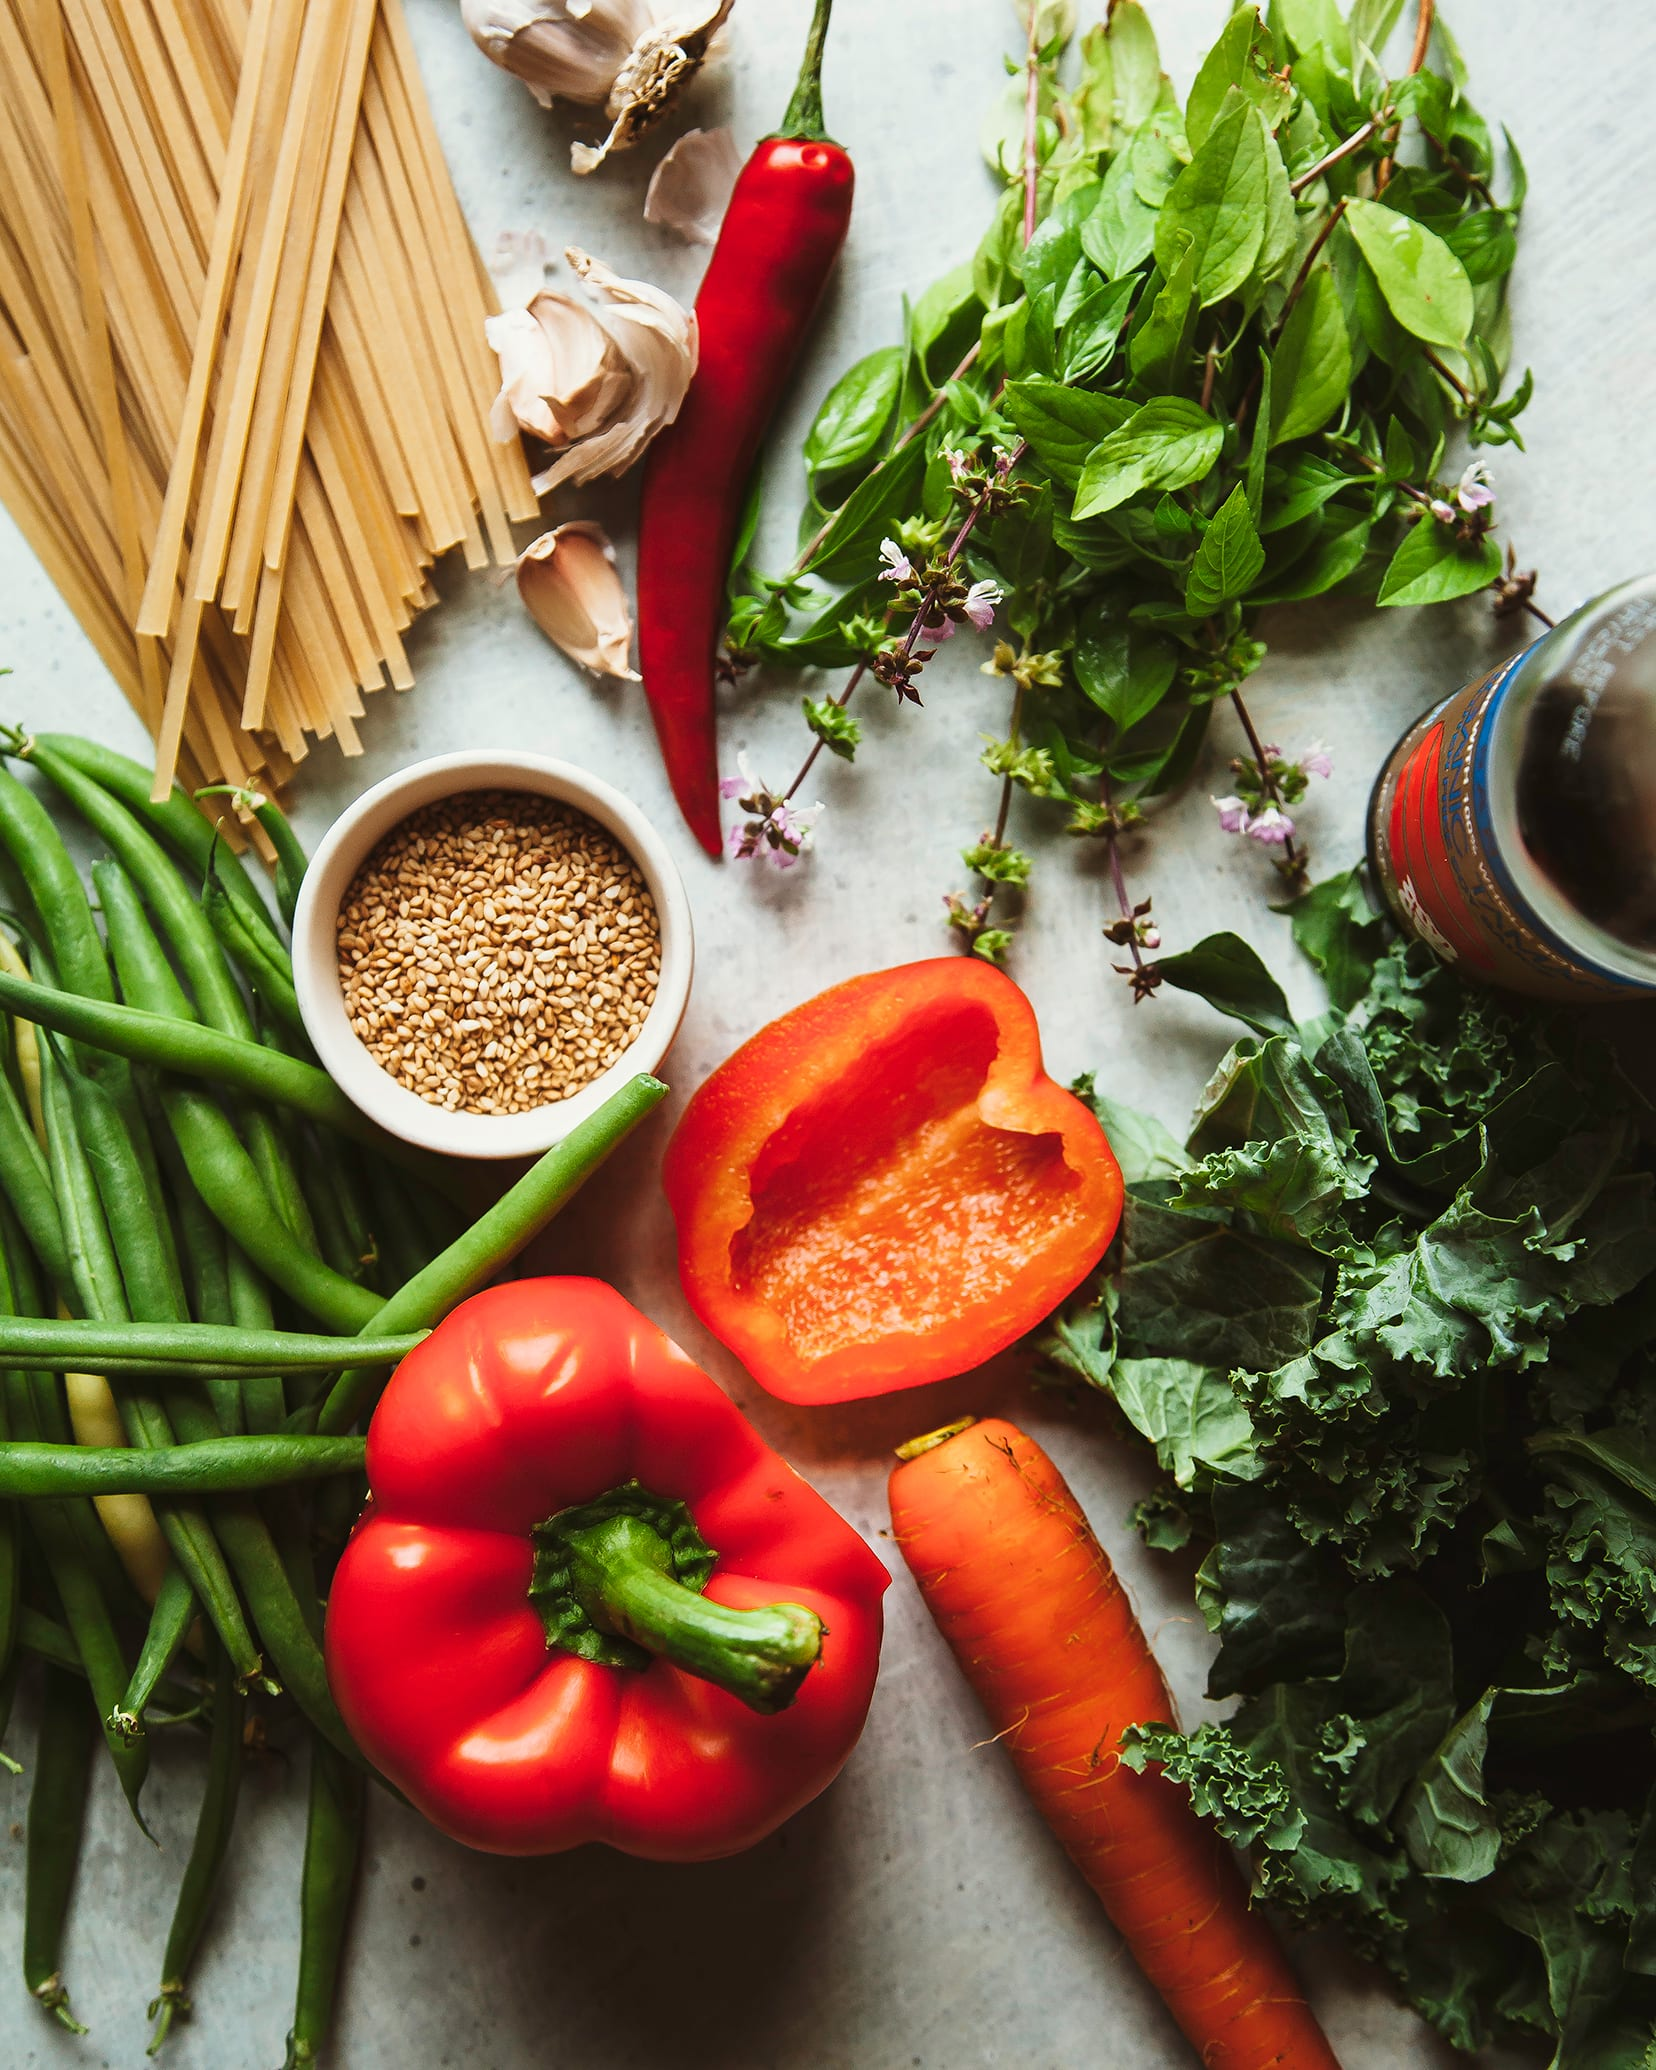 An overhead shot of ingredients for a vegan Thai basil noodle dish.